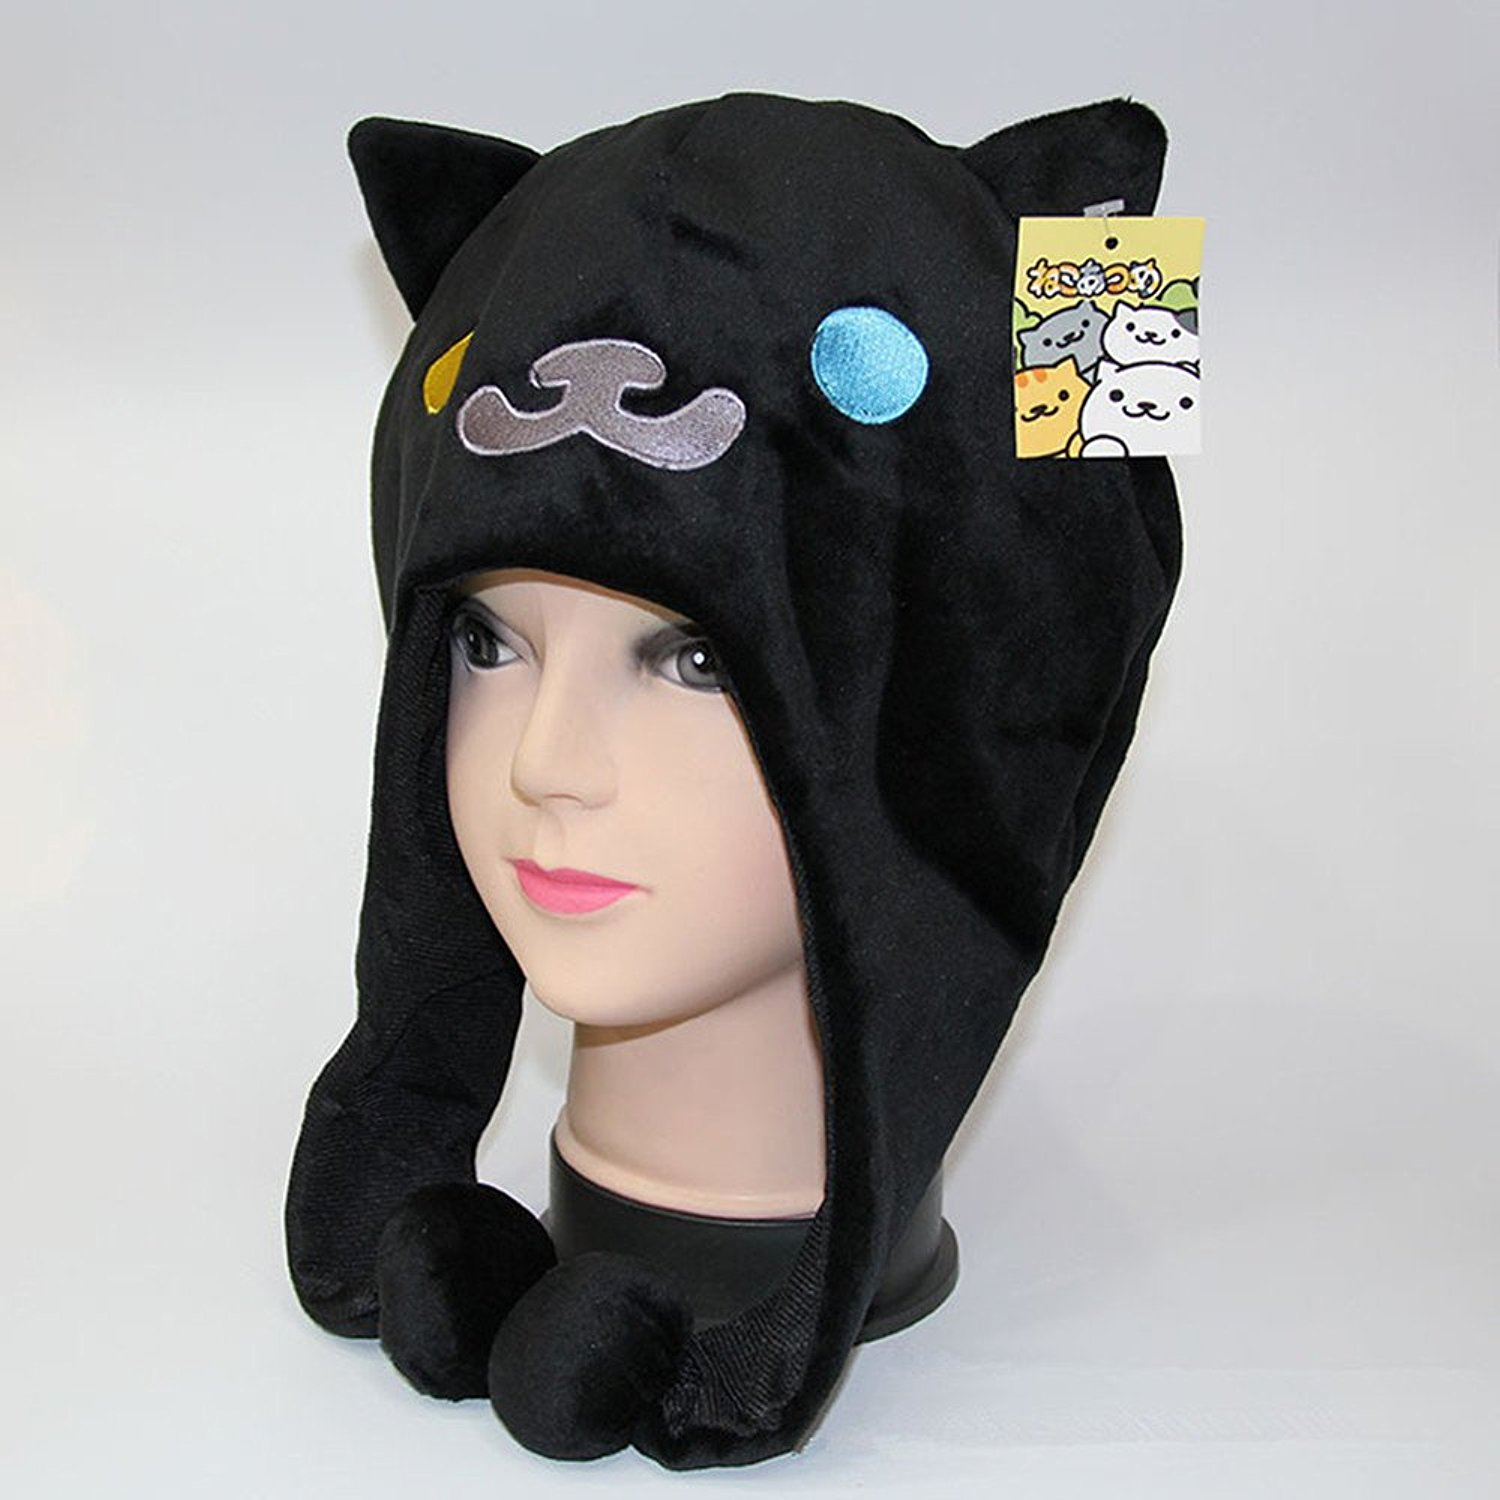 32f5292997e Get Quotations · Anime Cartoon Neko Atsume Hats Cute Cat Plush Winter Warm  Hat Cosplay Hat 3 Color Can